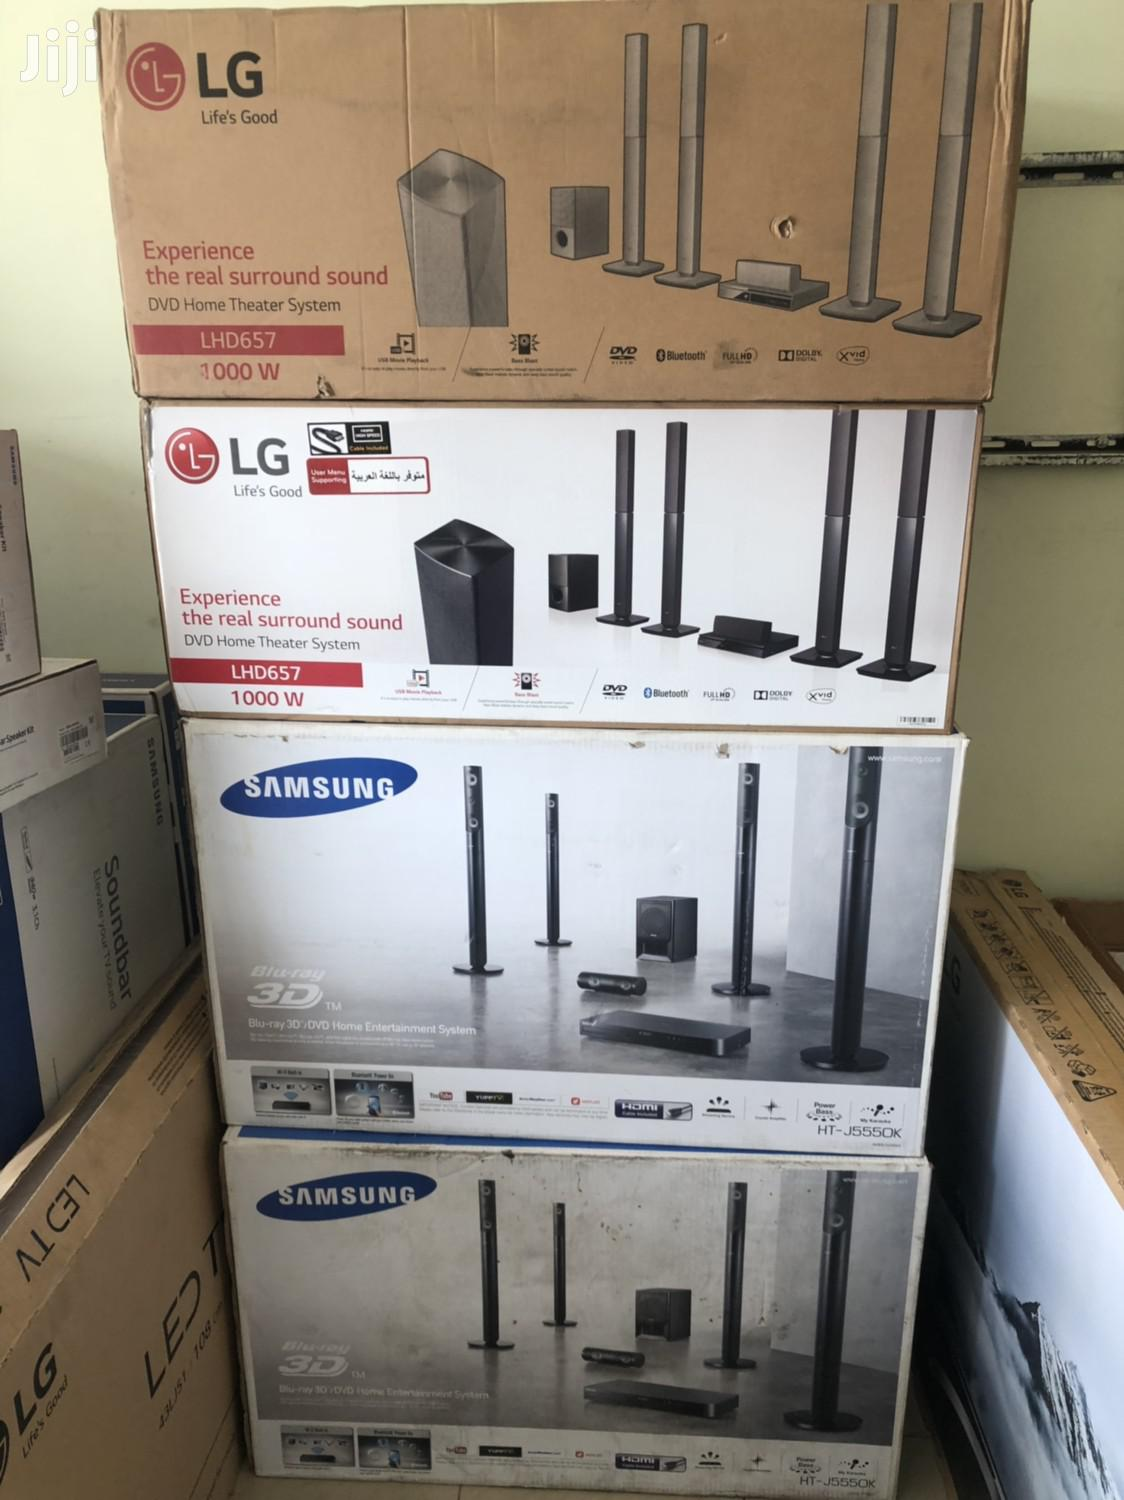 LG 1000W Bluetooth Home Theater System